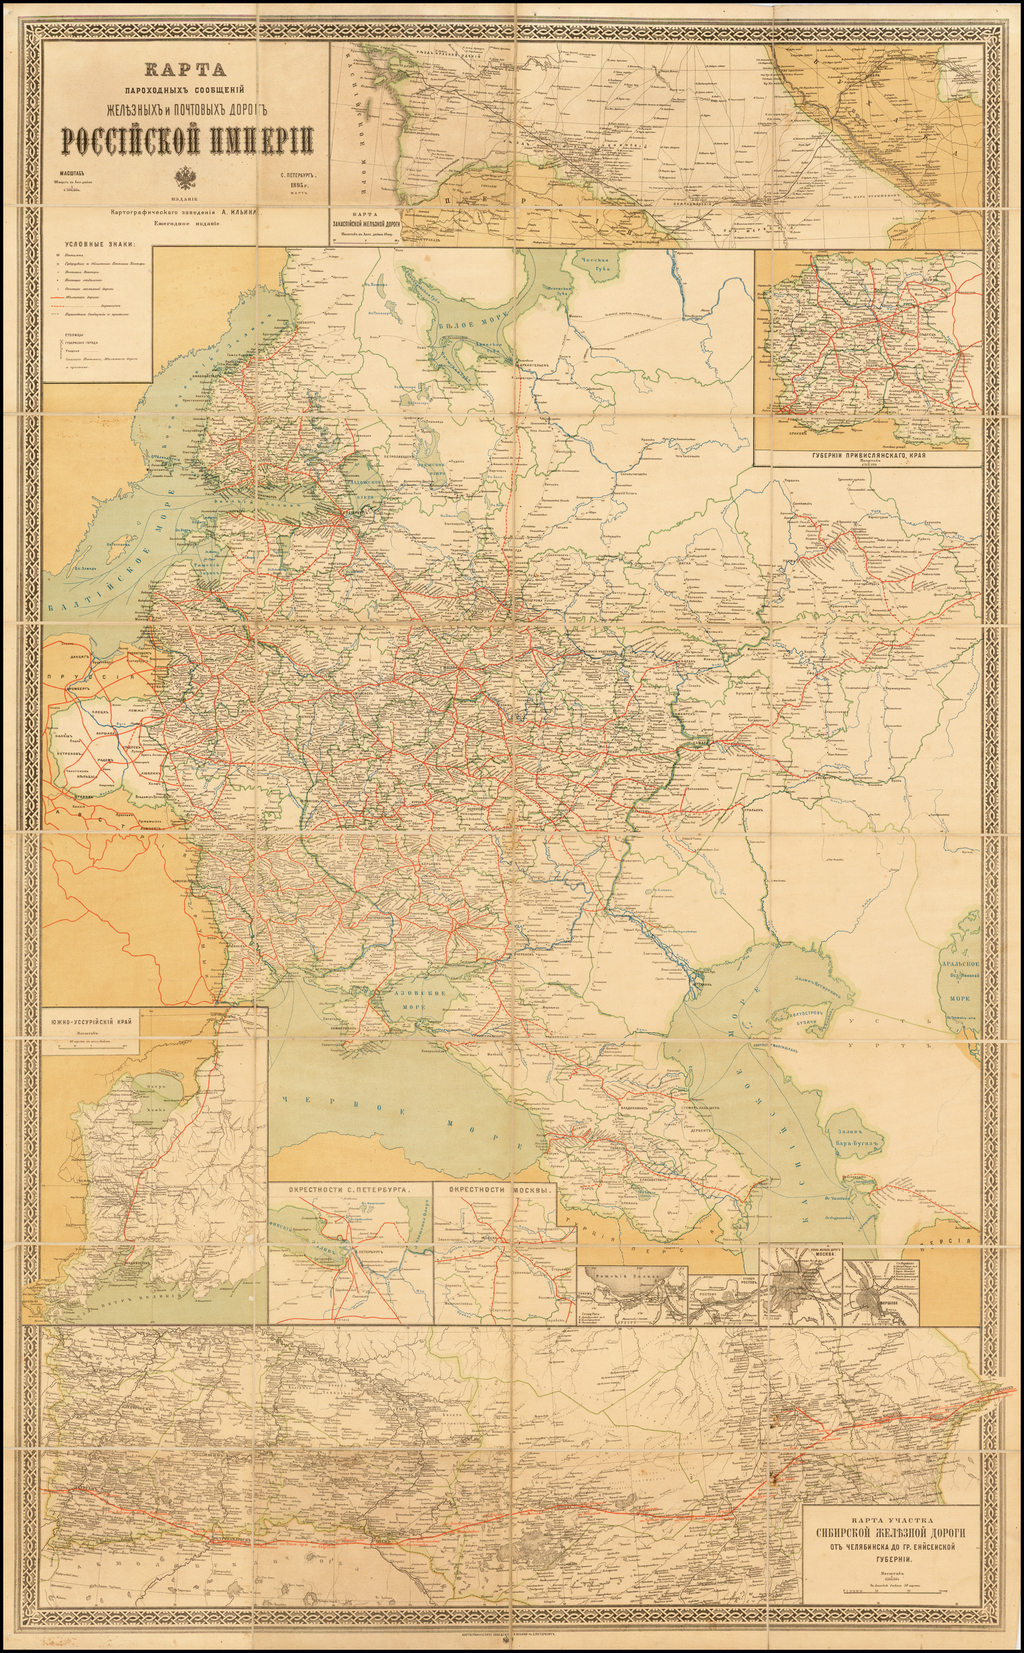 [Transport Map of Russia: 'Map of the routes of Steamships, Communication lines, Railways and Roads in the Russian Empire'] Carta Parahodnyii Soobshenyii Zheleznyii i Poutovyii Dorog Rossiyskoi Imierin  By Cartographic Establishment of A. Ilyin